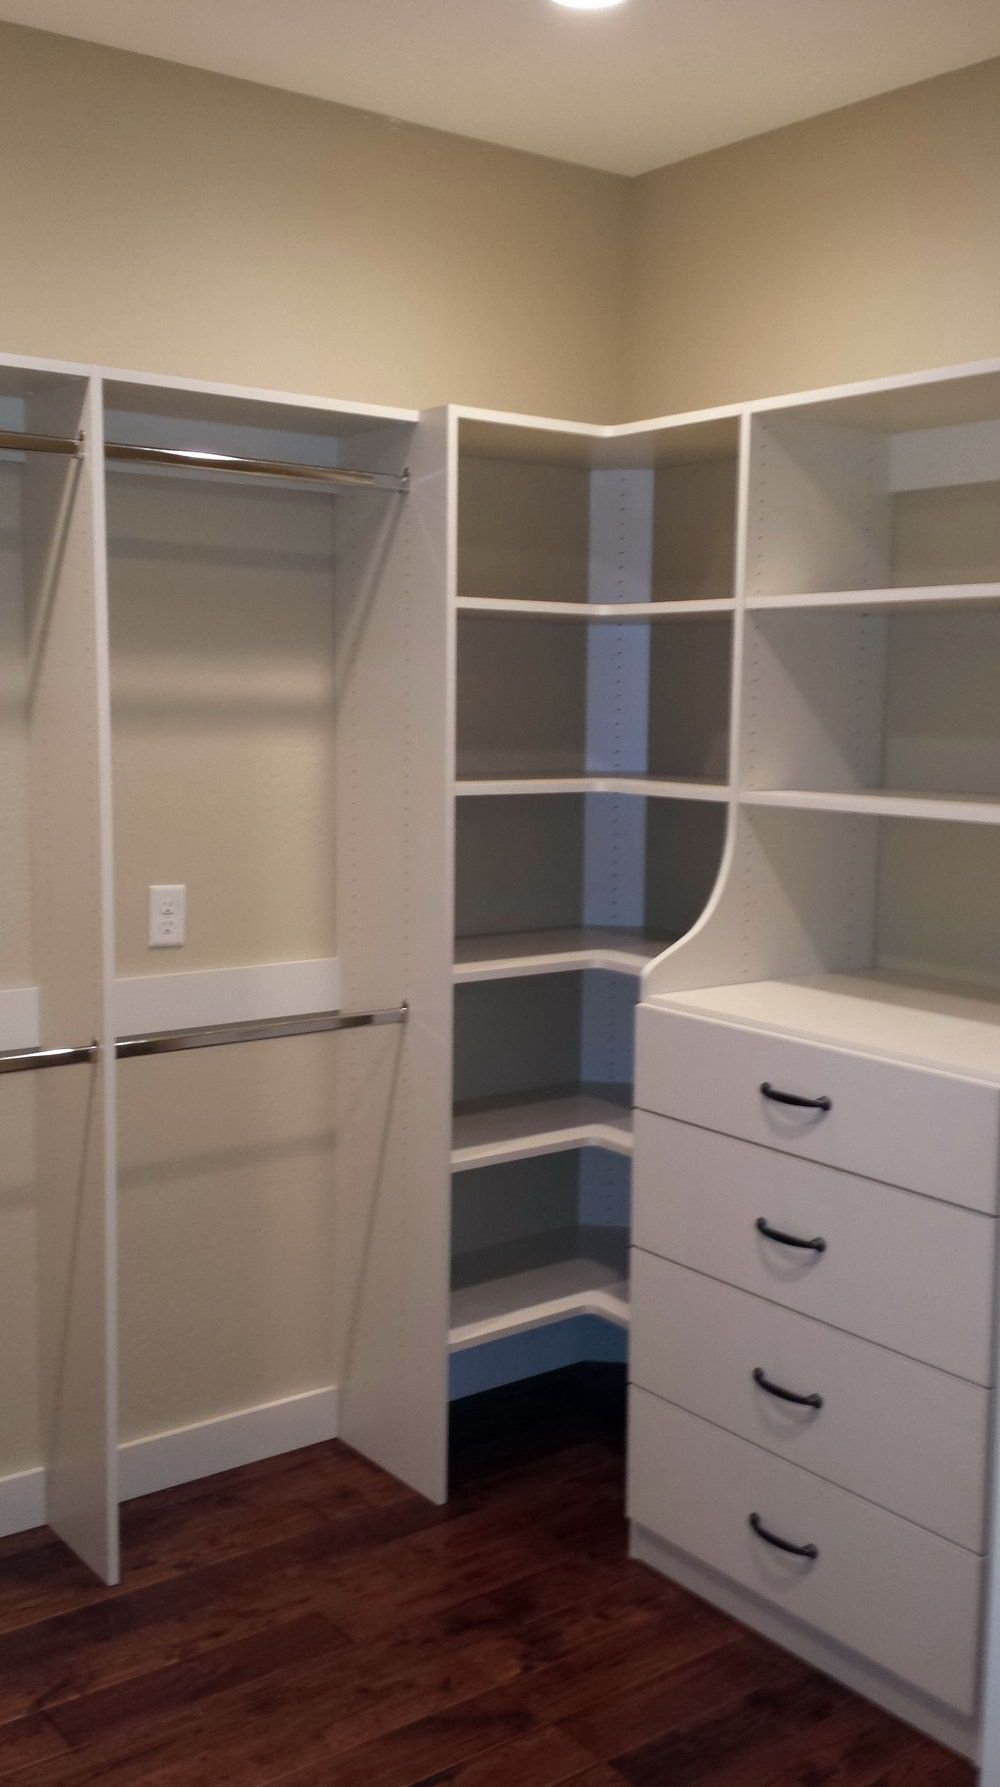 Shelving Units With Drawers Corner Closet Organizer Closet Shelving Units Corner Closet